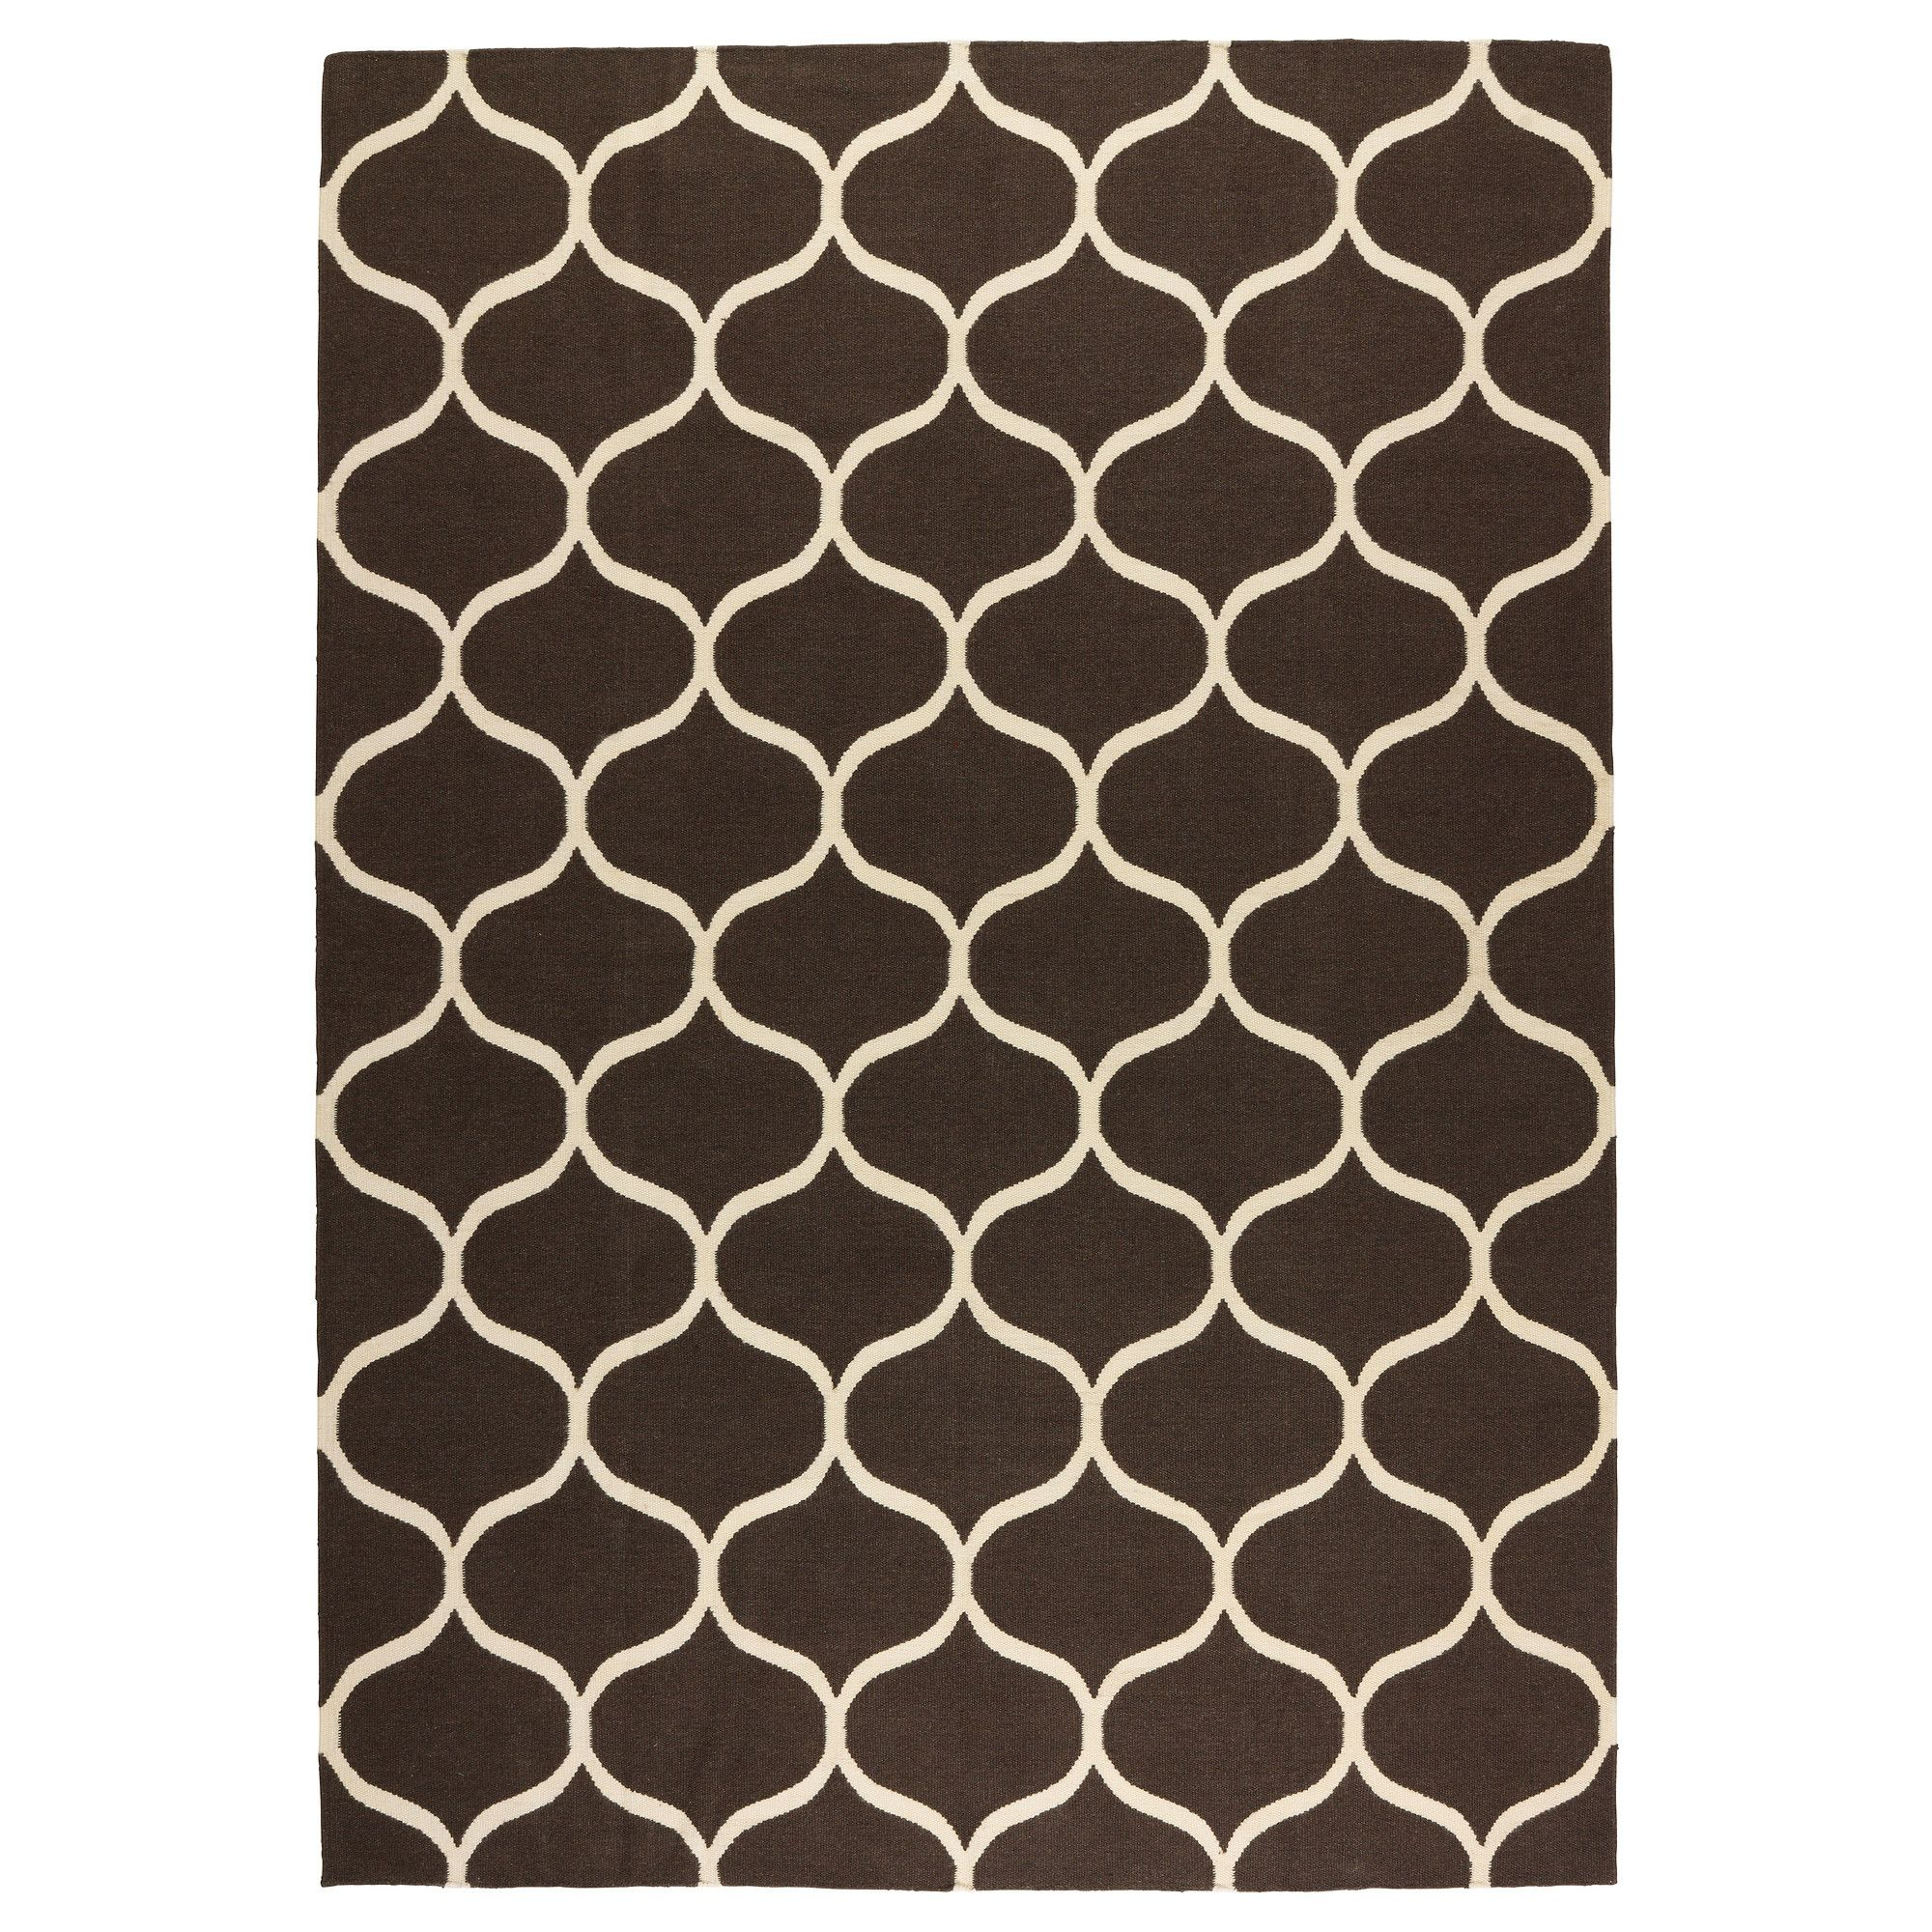 stockholm rug, flatwoven - ikea found this pattern in black and